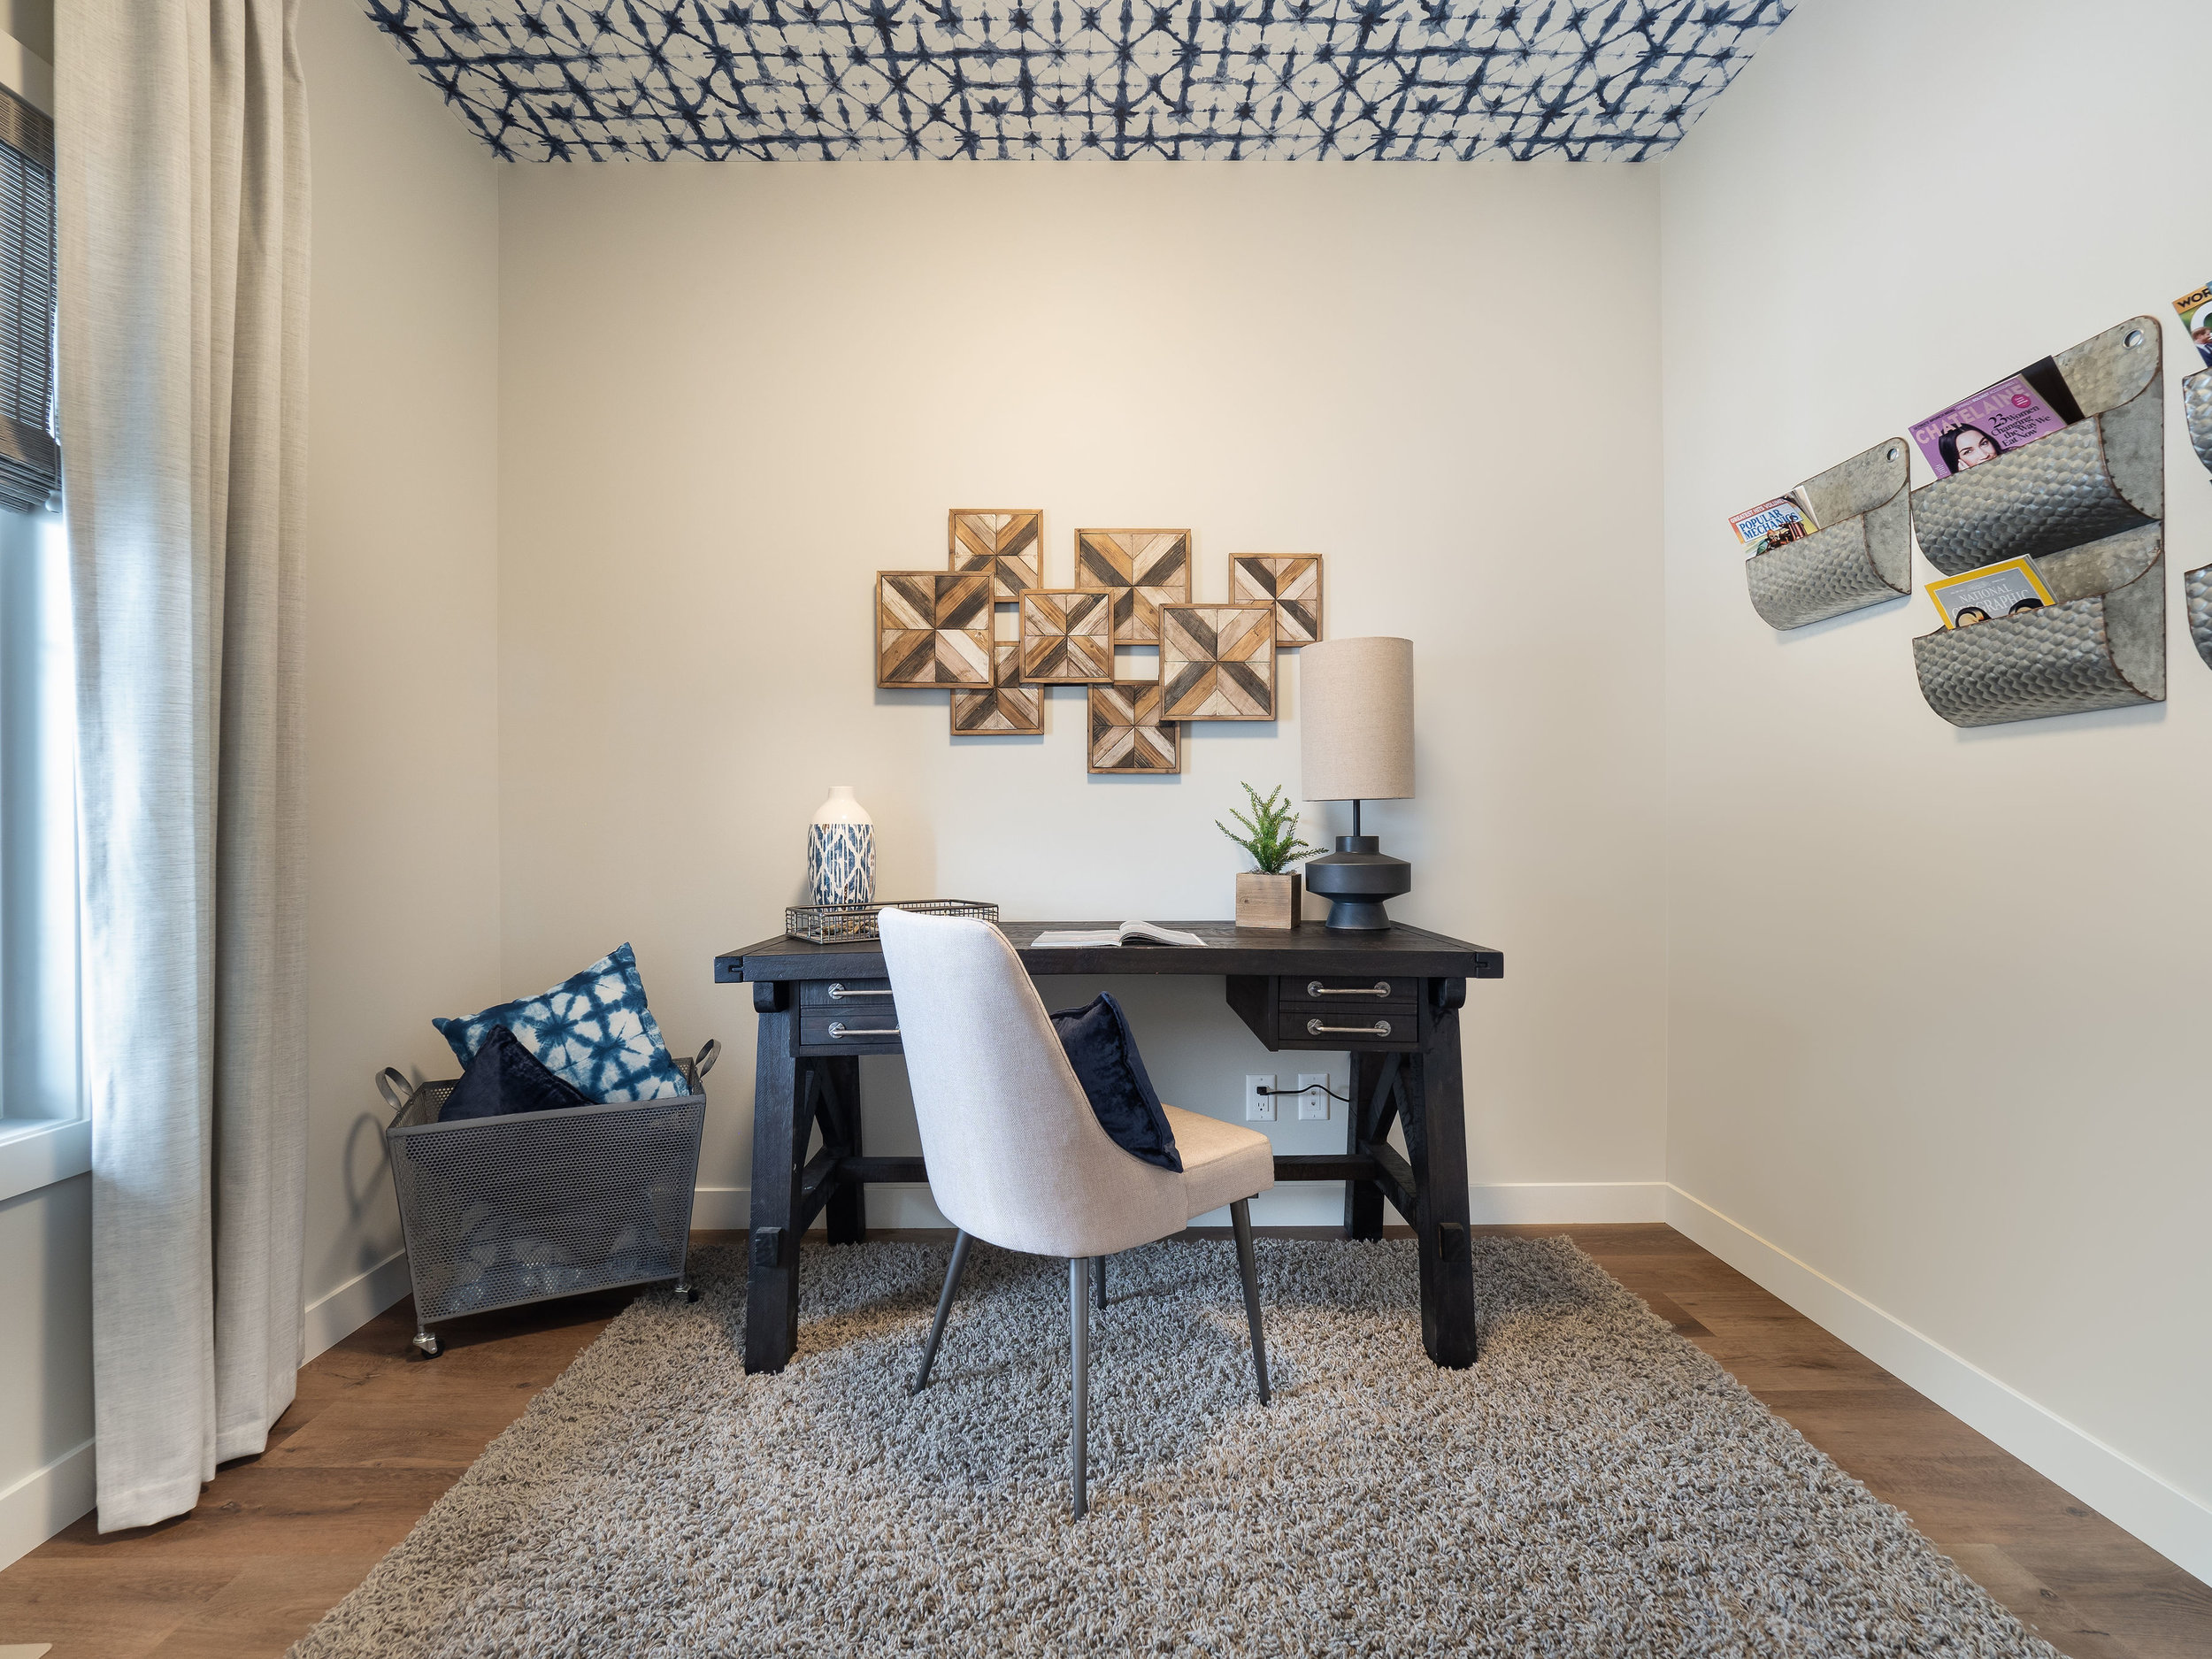 Our feature in the den was wallpaper, but on the ceiling. The blue theme was able to carry through when we found an abstract geometric pattern with a lot of impact in an otherwise quaint space. If wallpaper goes on the ceiling, is it REALLY wallpaper?